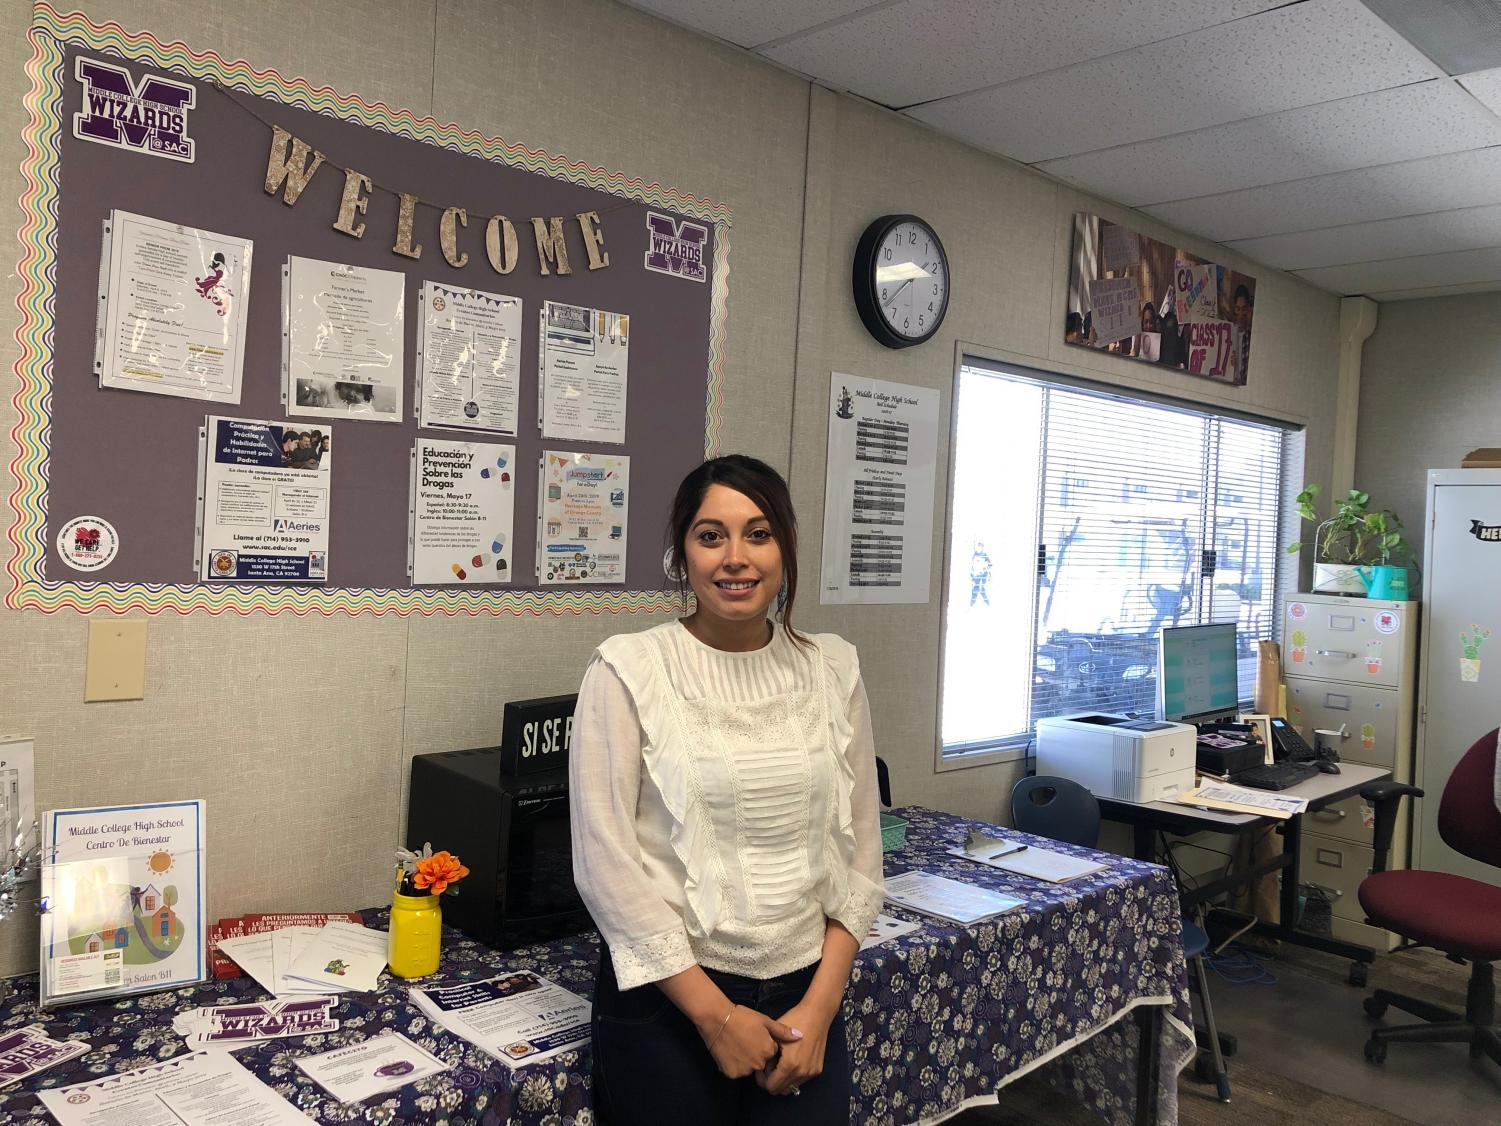 Ms. Quinones, the head of the new Wellness Center, is ready to help any students in need.